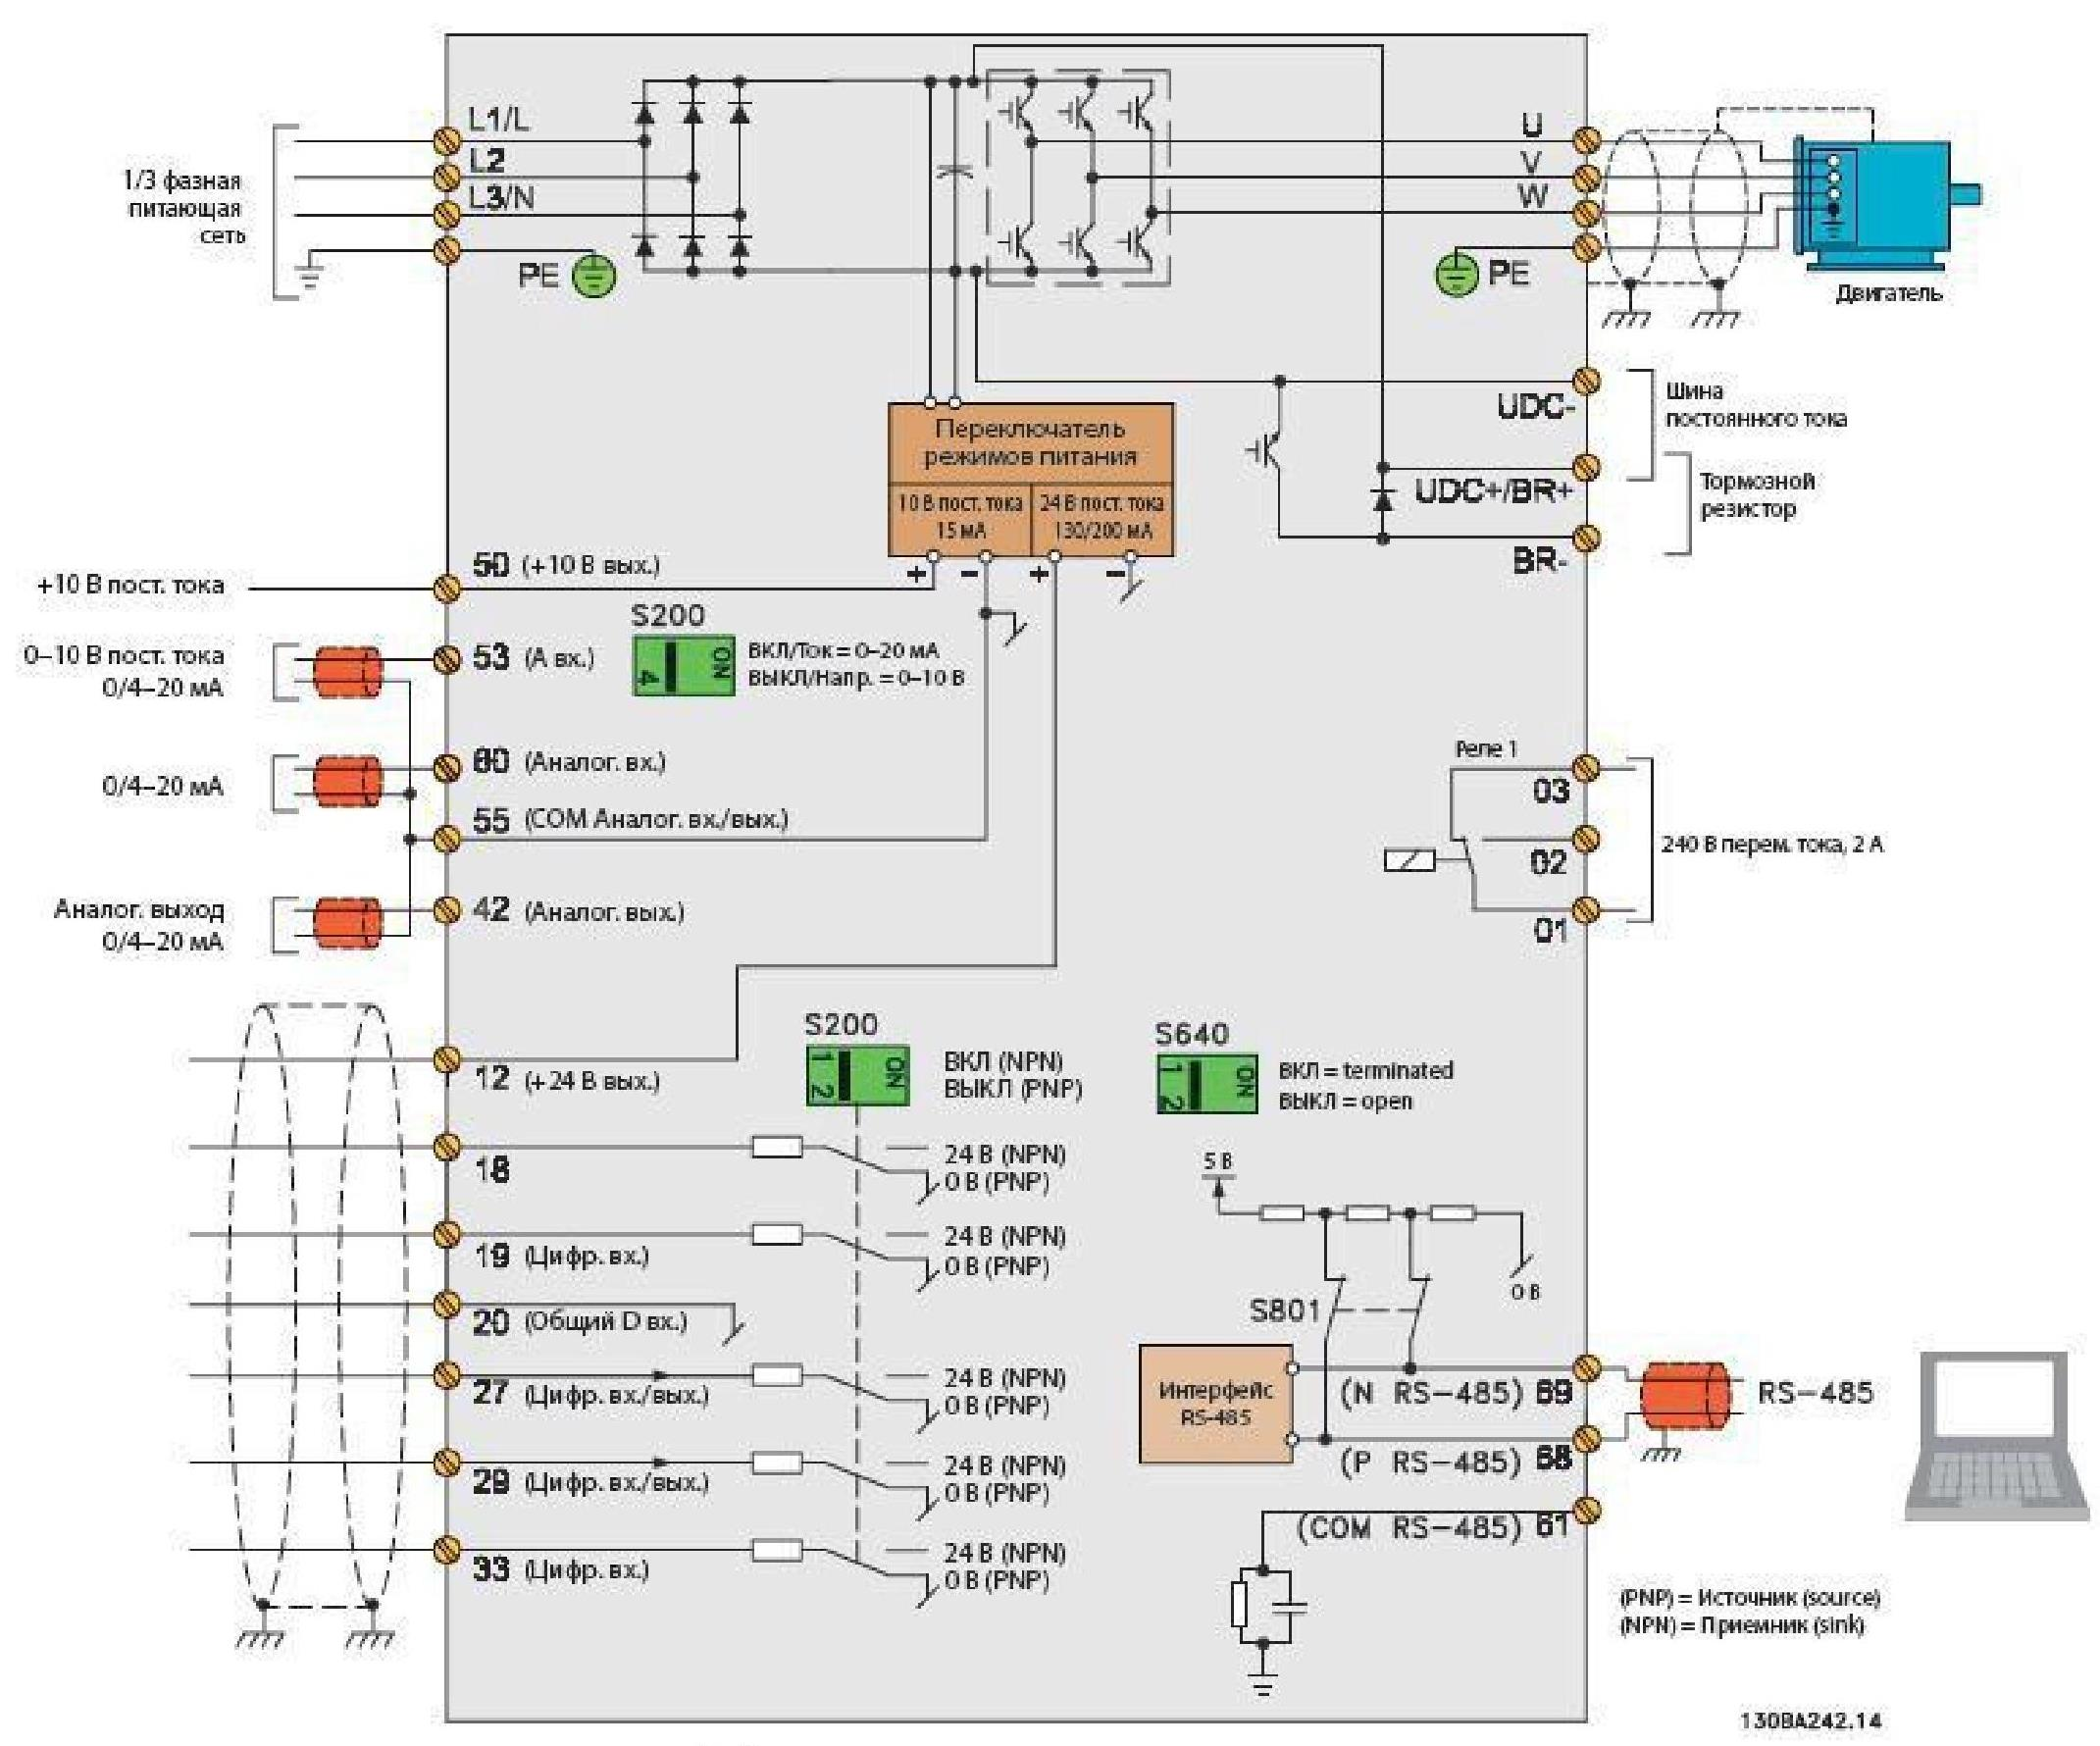 danfoss vlt 2800 profibus manual